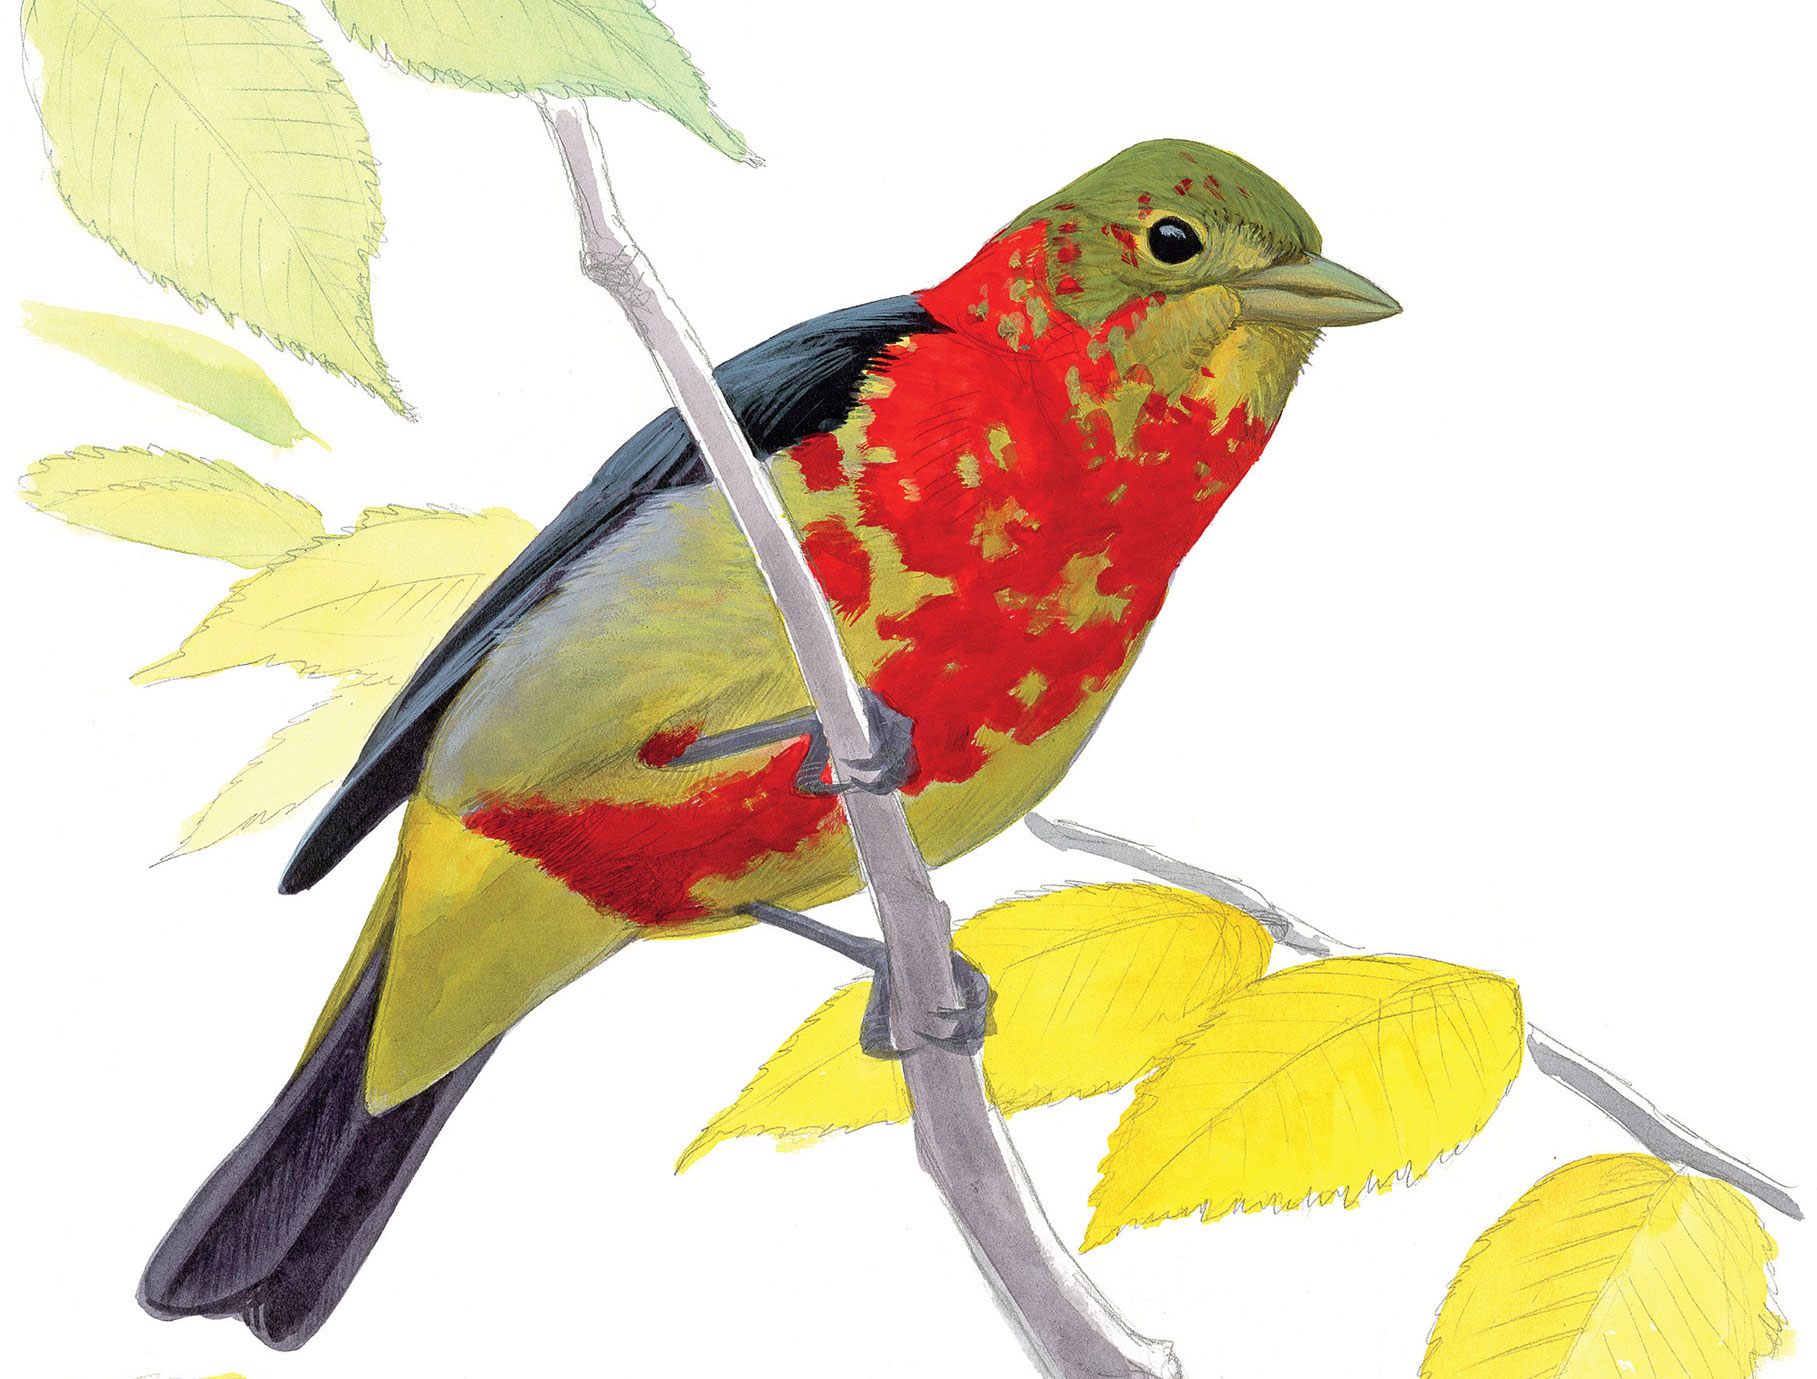 A male Scarlet Tanager in the process of molting. Illustration: David Allen Sibley